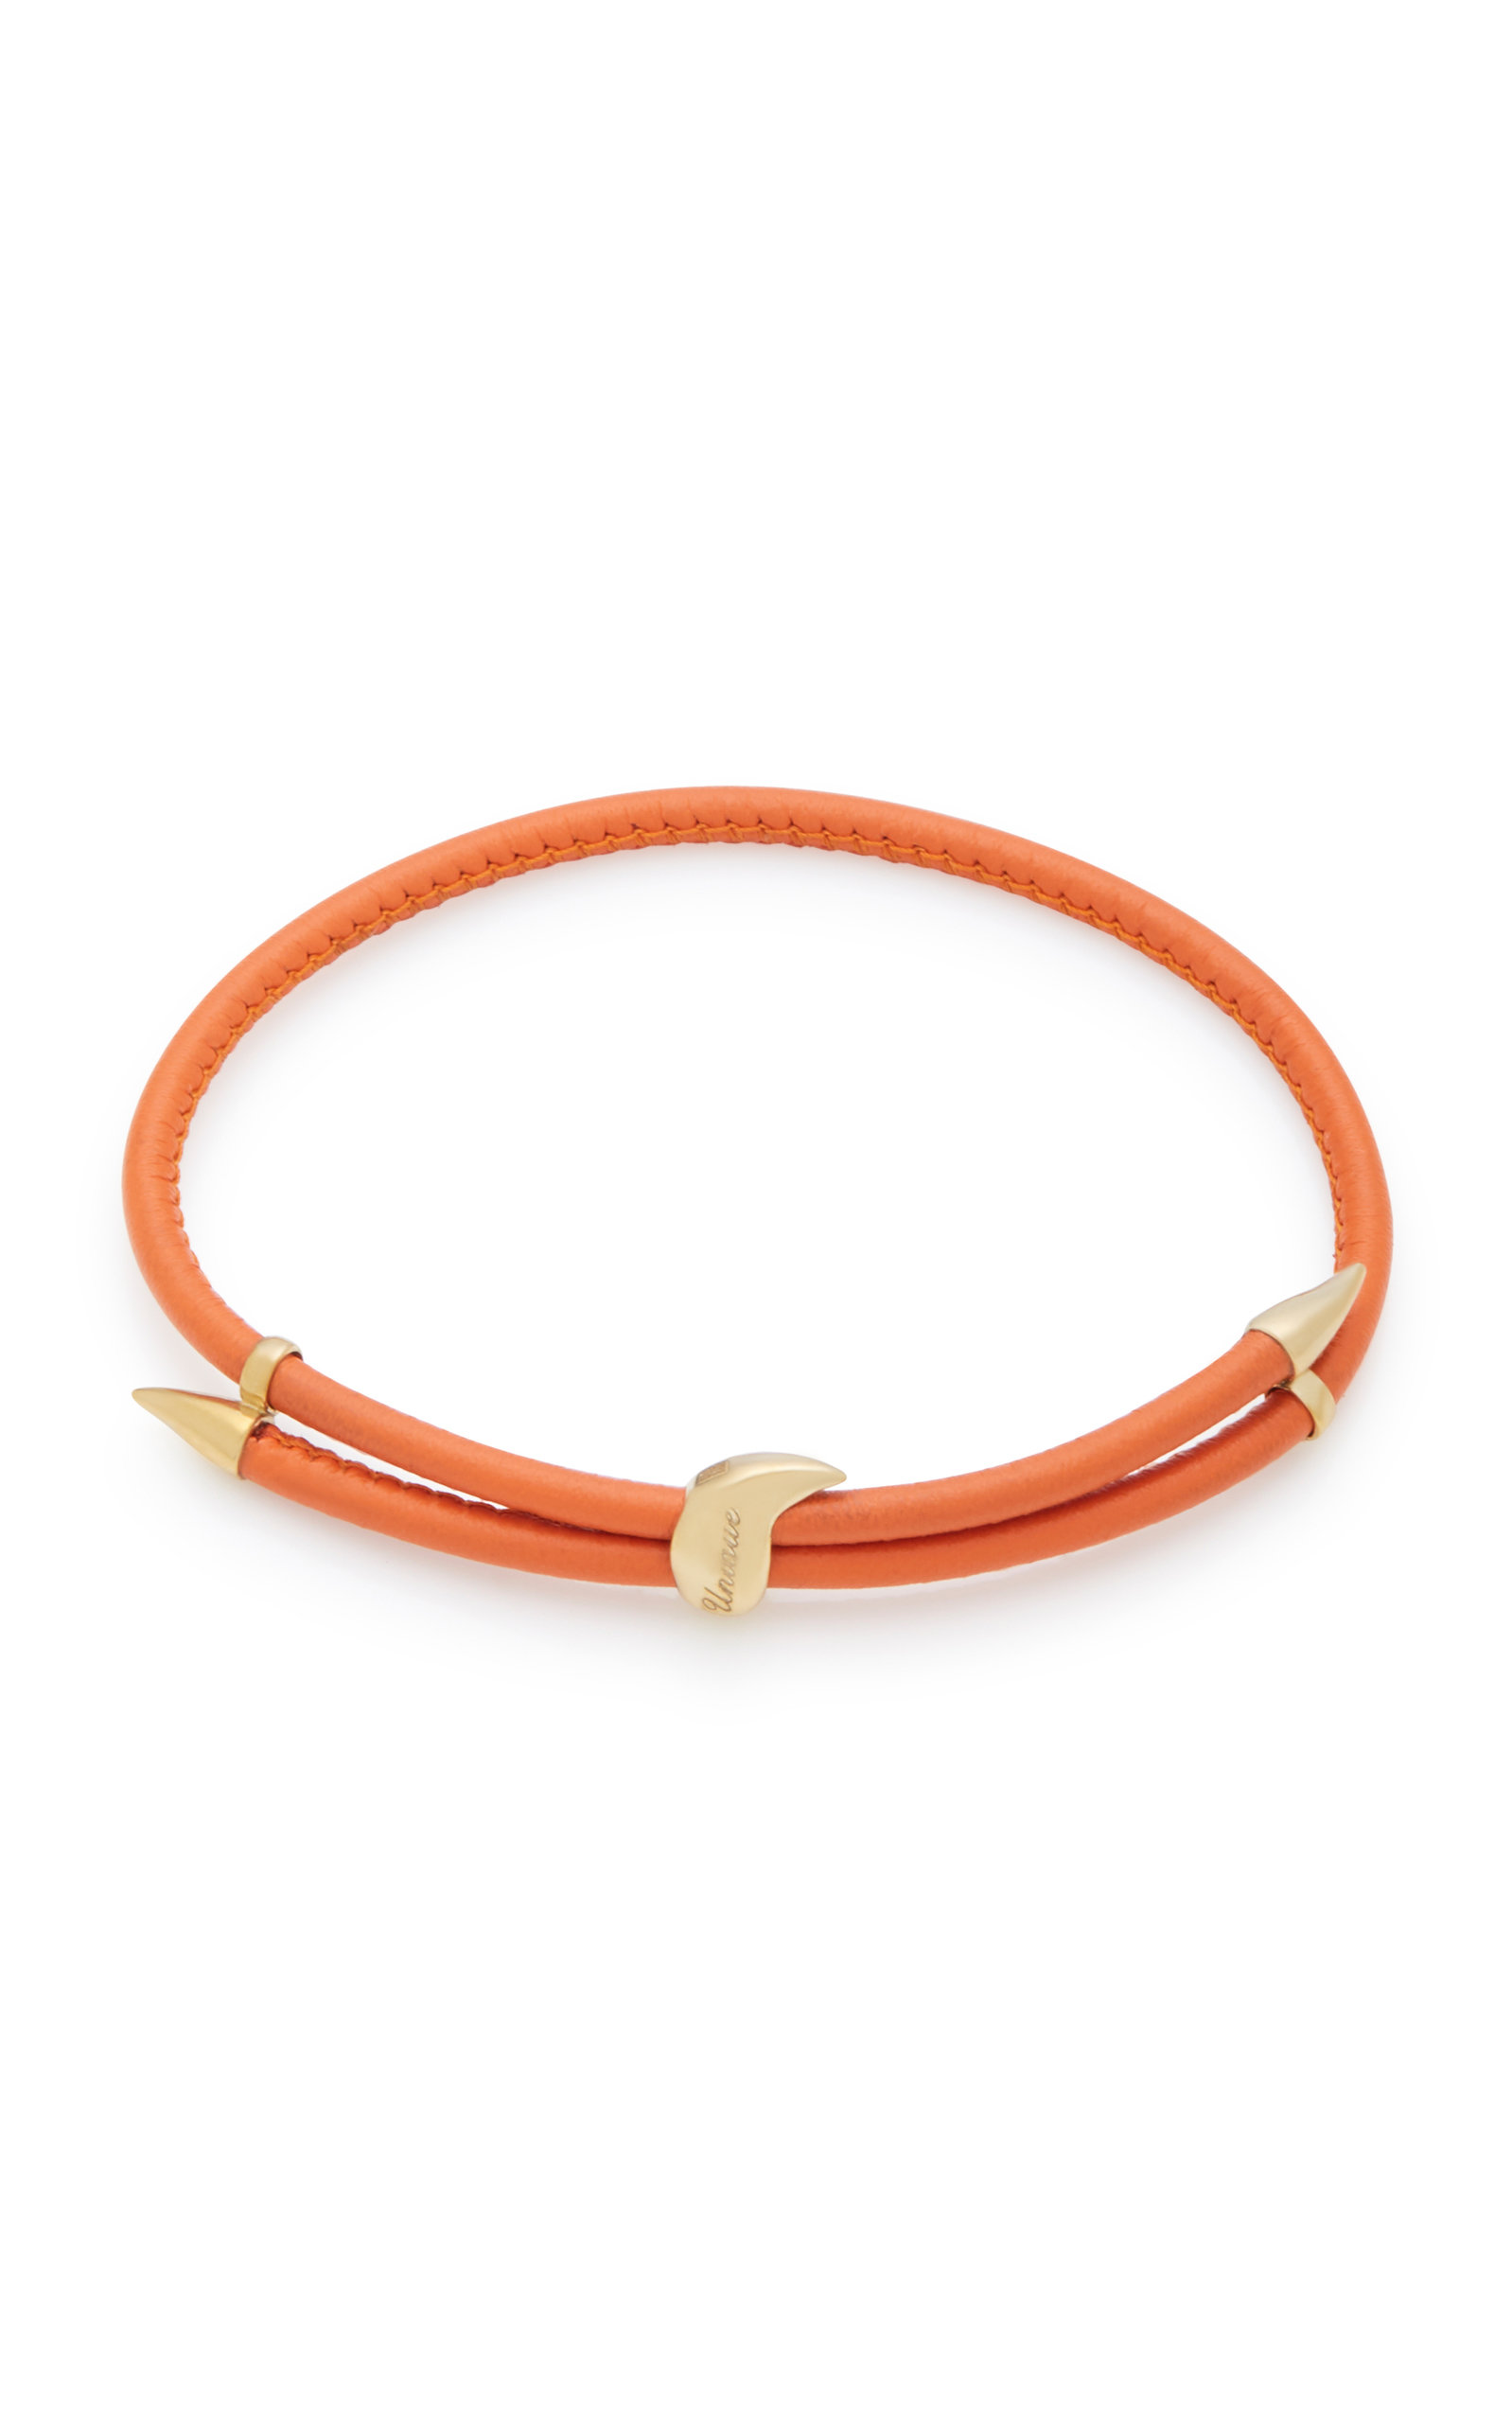 BEA BONGIASCA HELICONIA 9K GOLD AND LEATHER BRACELET